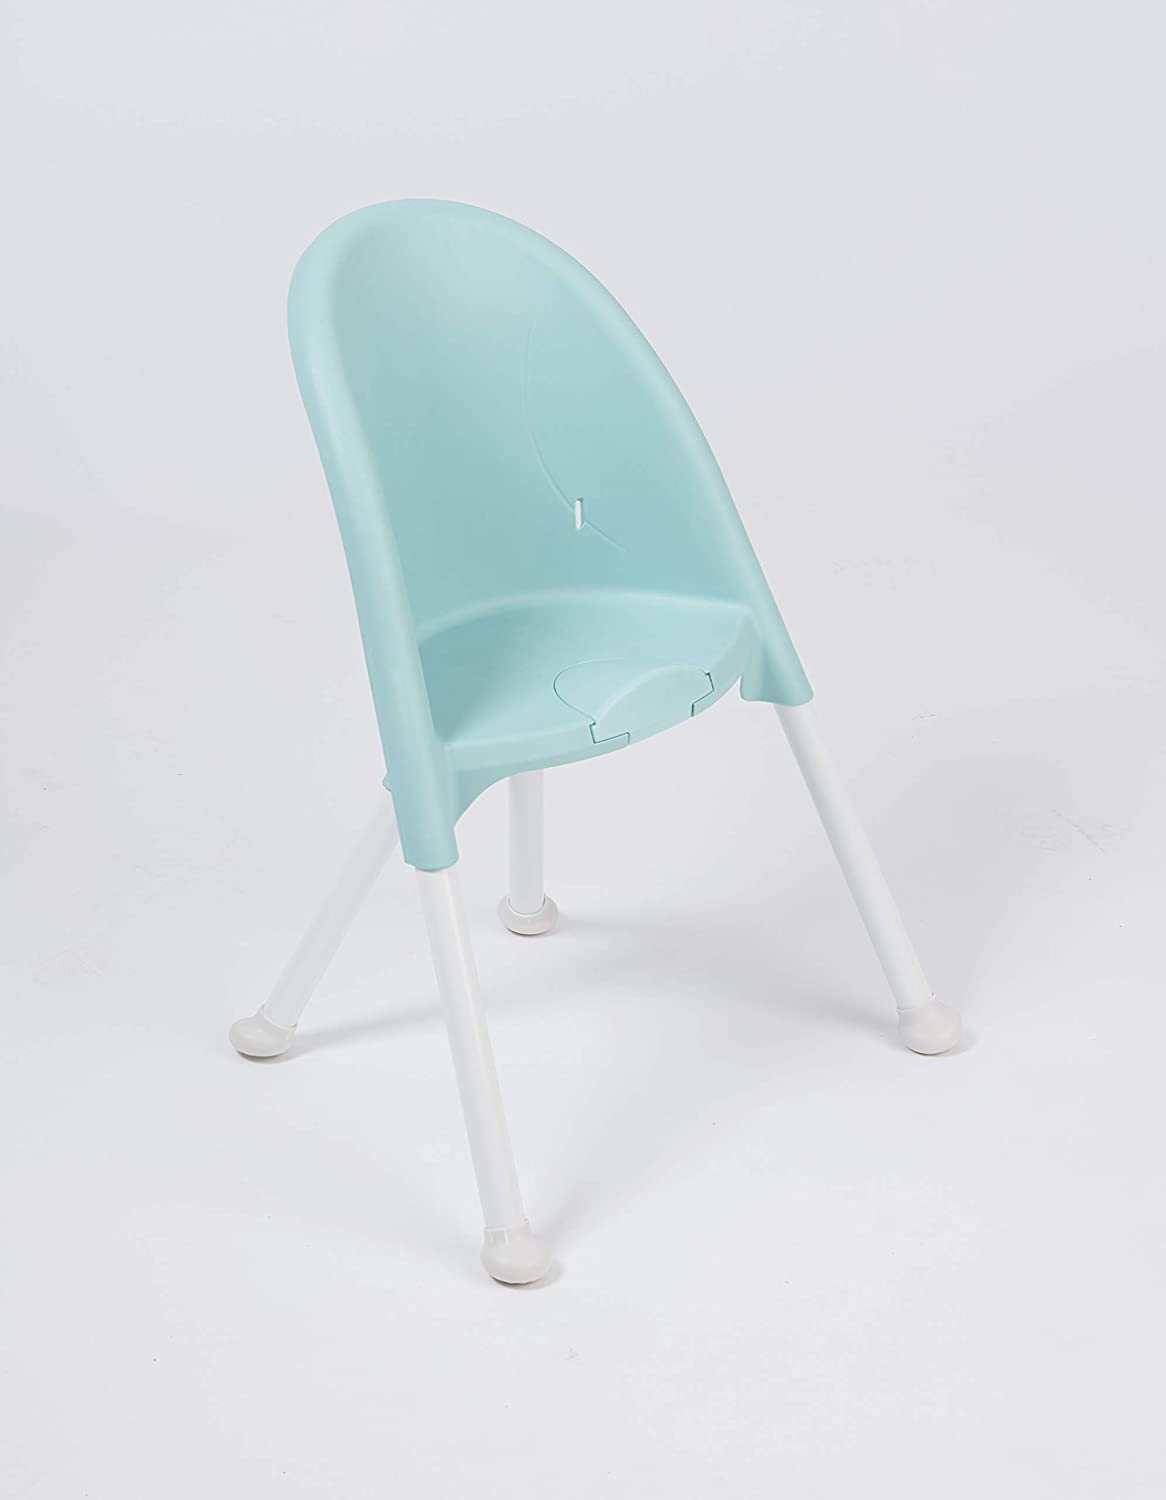 Amazon.com : Primo Cozy TOT Deluxe Convertible Folding High Chair & Toddler Chair, Teal/White : Baby